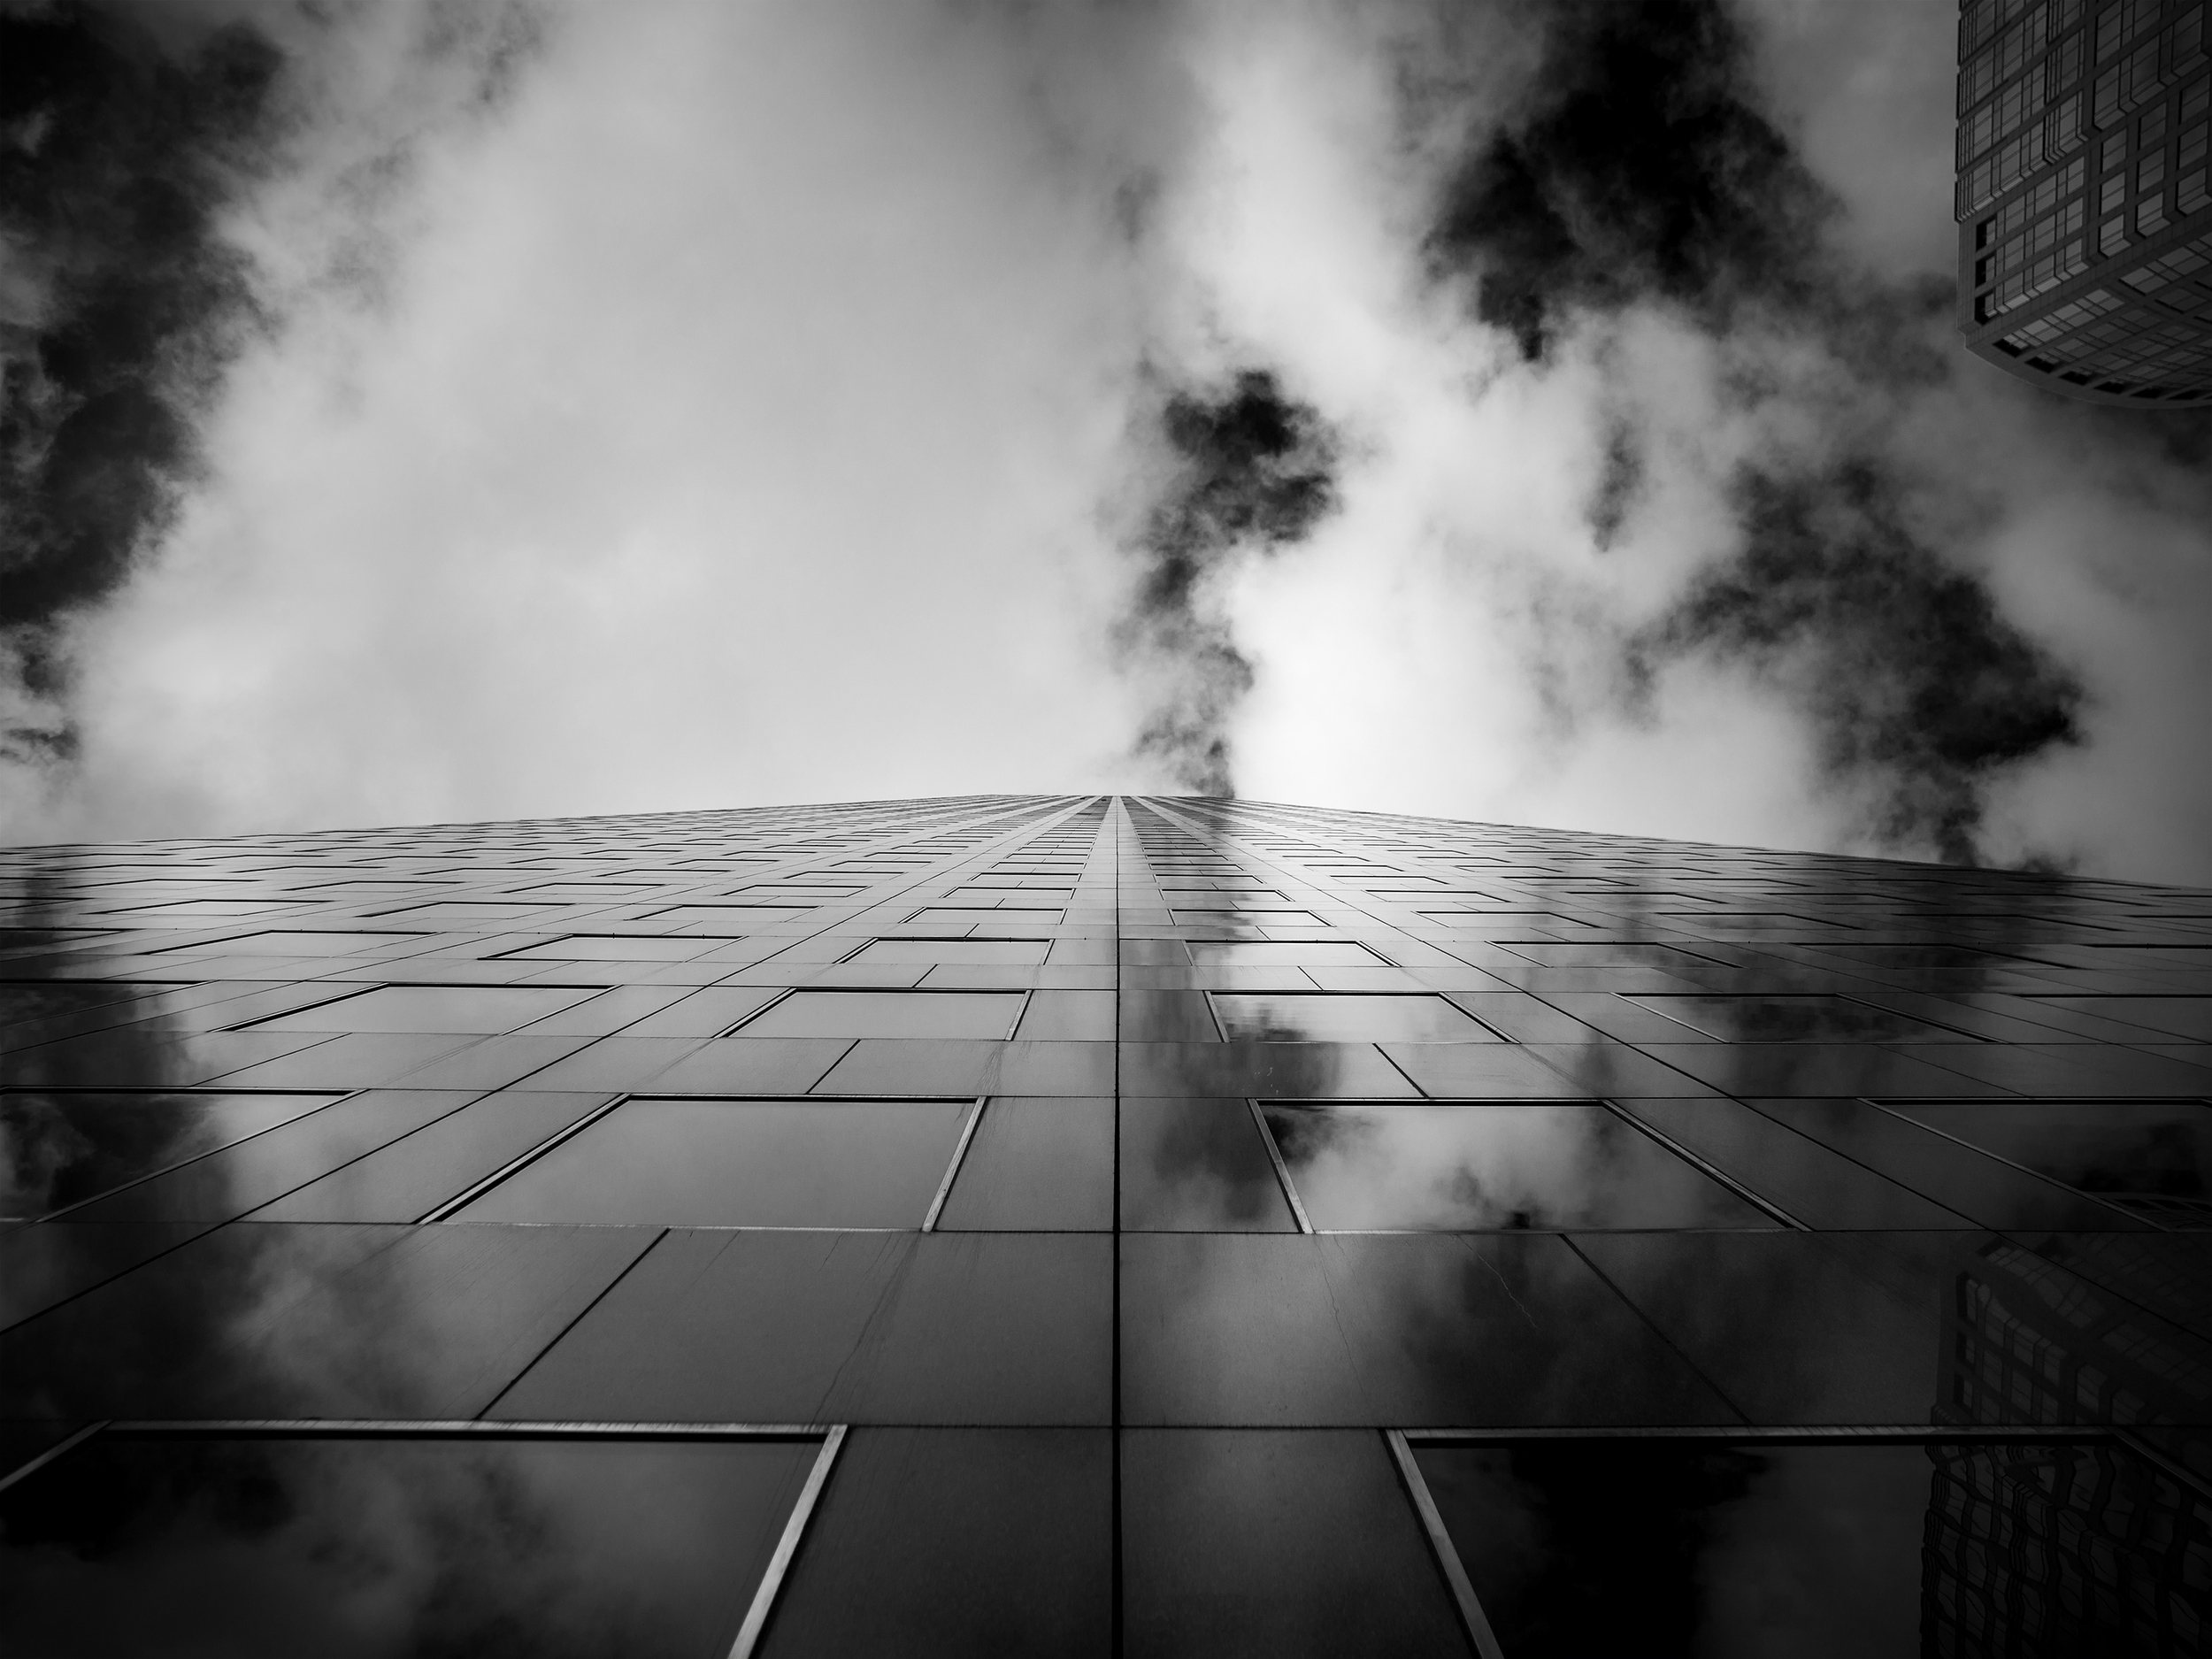 cityscapes1bw4x3small.jpg